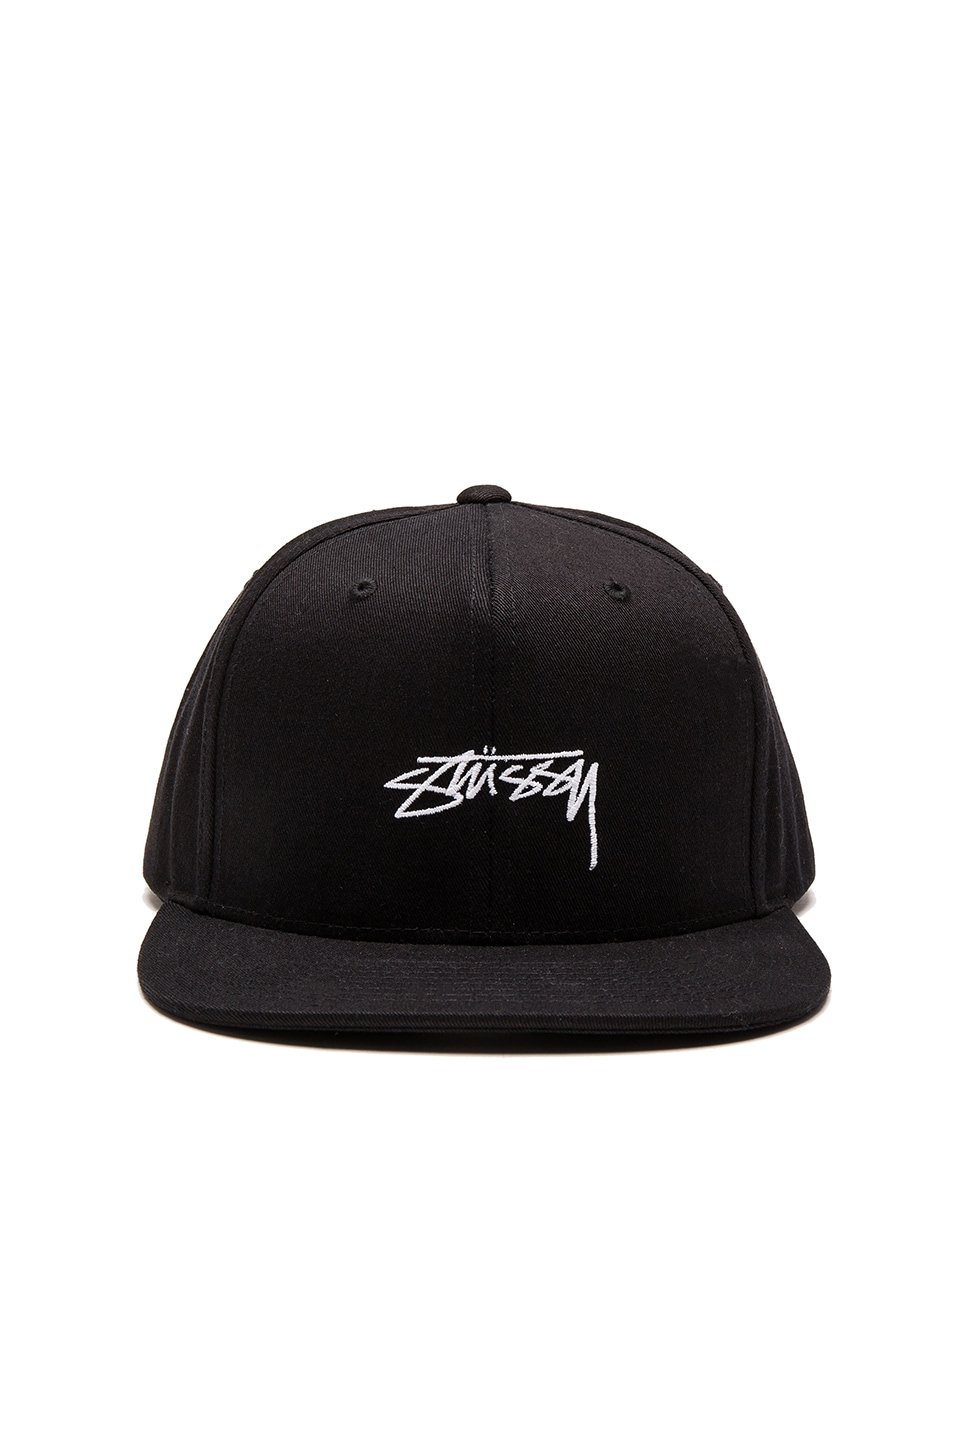 Smooth Stock Enzyme Snapback by Stussy